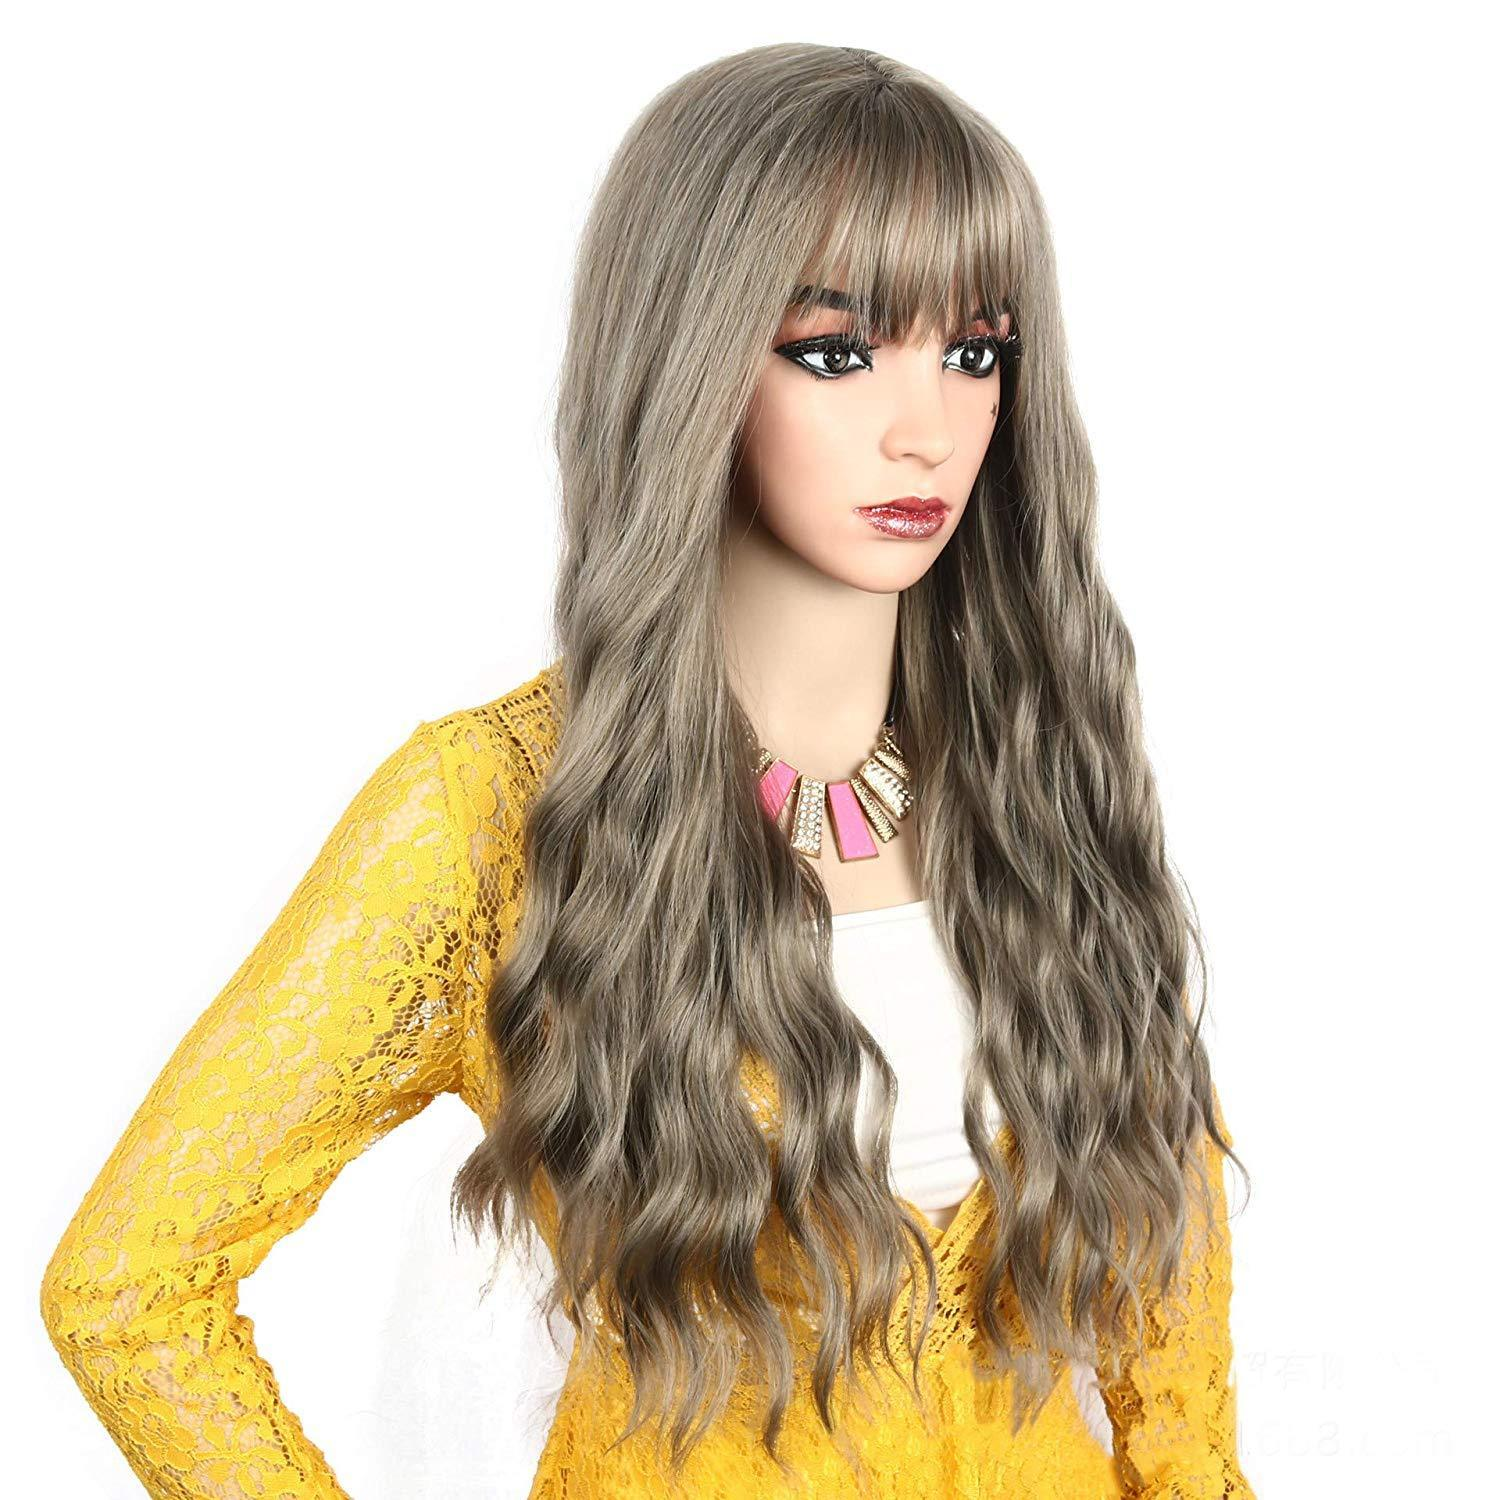 Women's Brown Wig Long Curly Wavy Hair Wigs